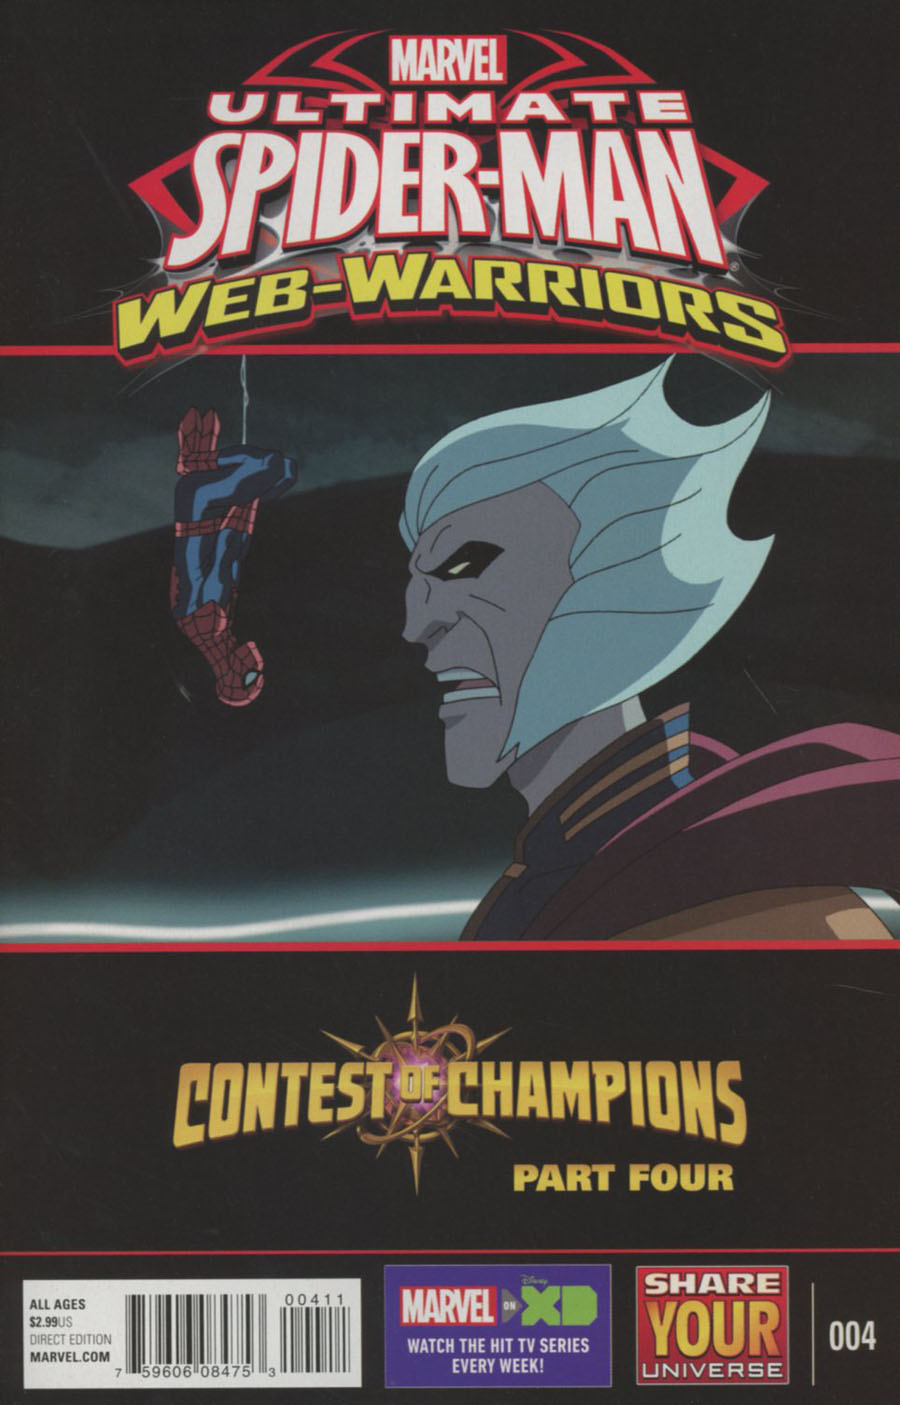 Marvel Universe Ultimate Spider-Man Contest Of Champions #4